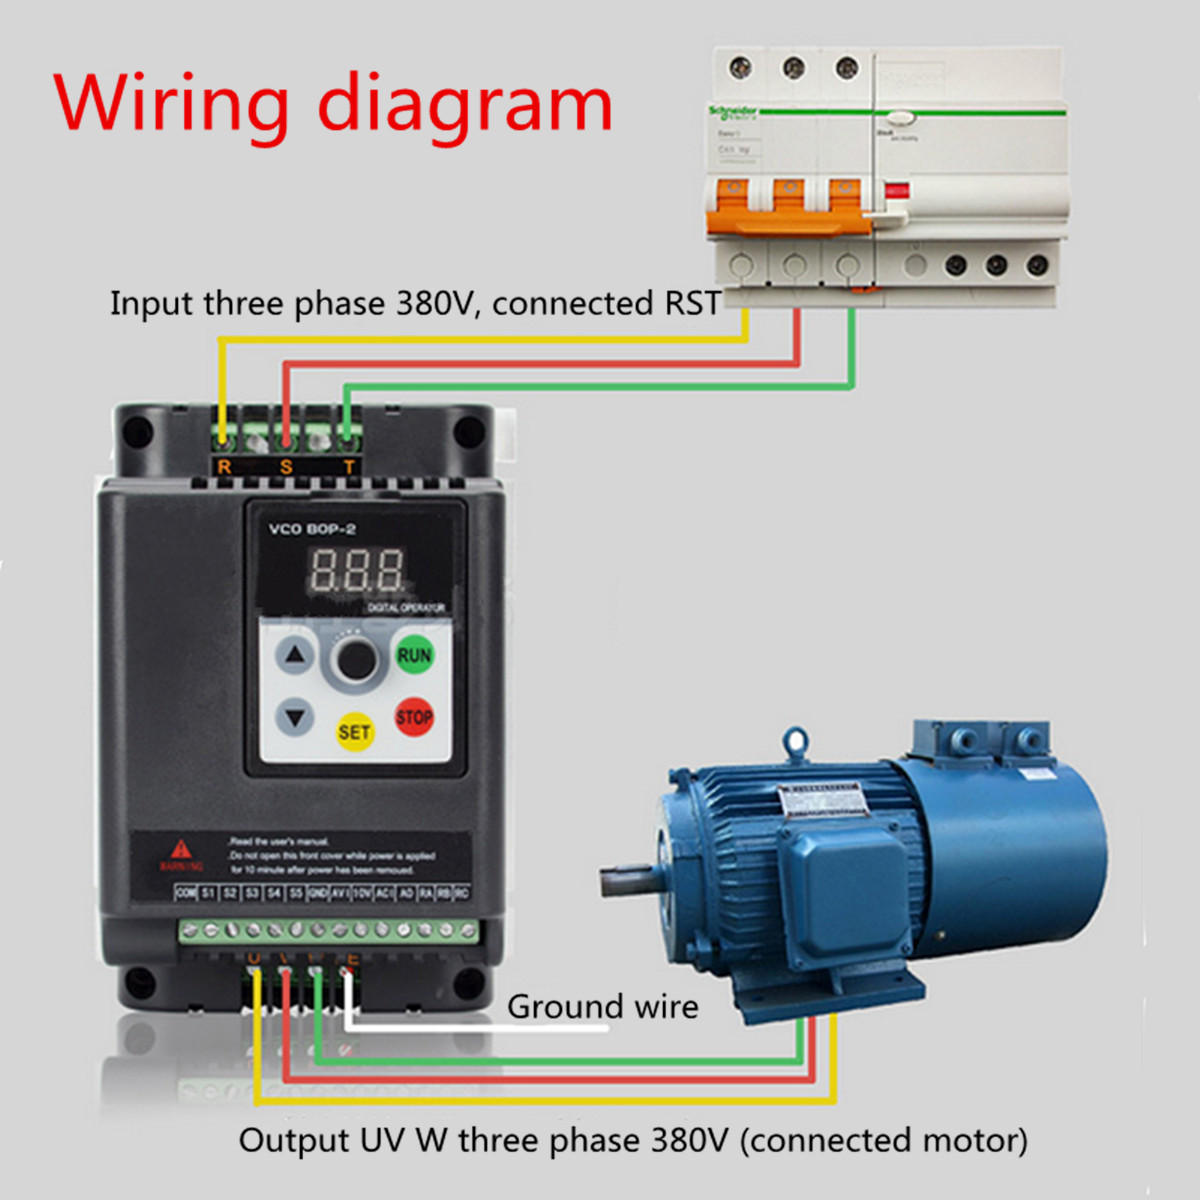 hight resolution of 0 75kw 380v variable frequency inverter built in plc 3 phase in 3 phase out